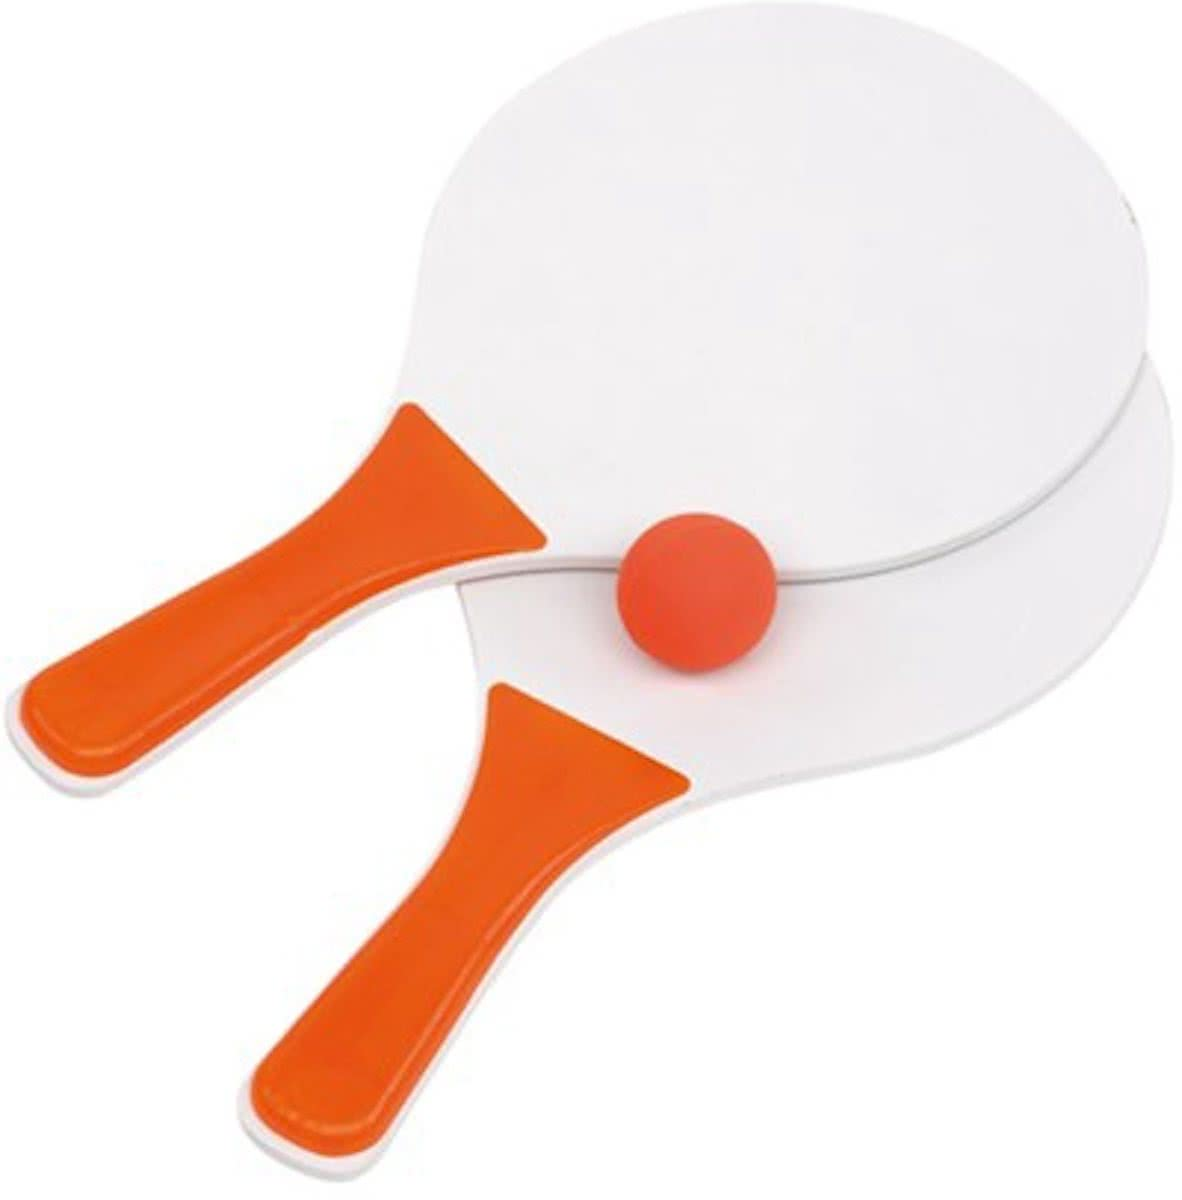 Beachball set - Oranje-Wit - 37.5x23.5cm - Strandbal tennis